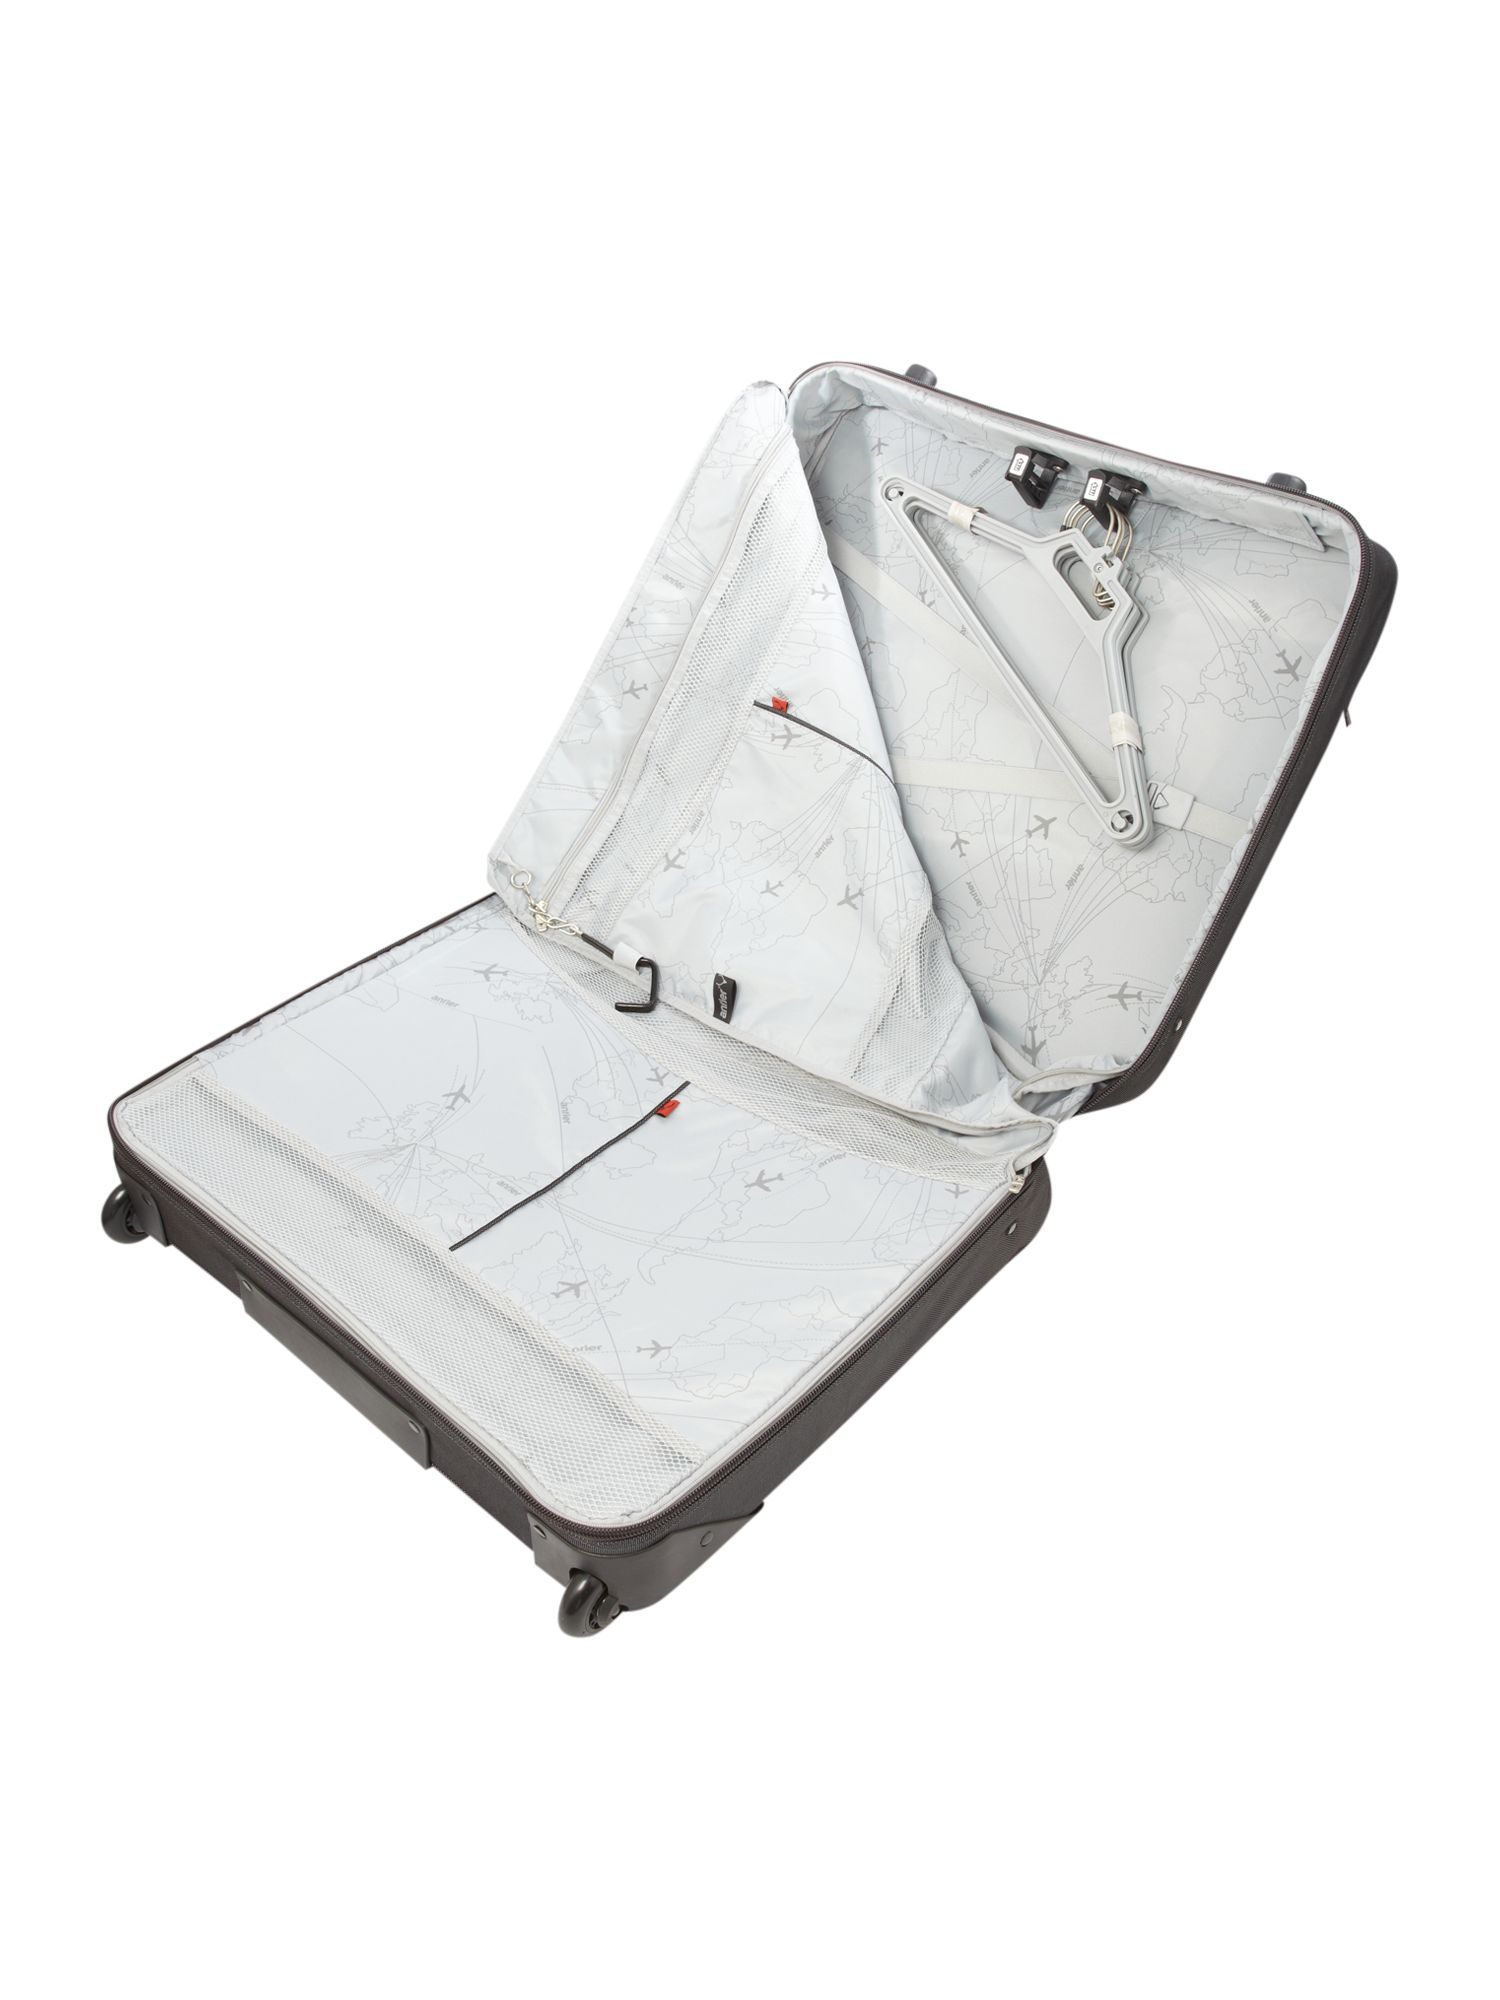 Business 100 Wheeled Trolley Wardrobe